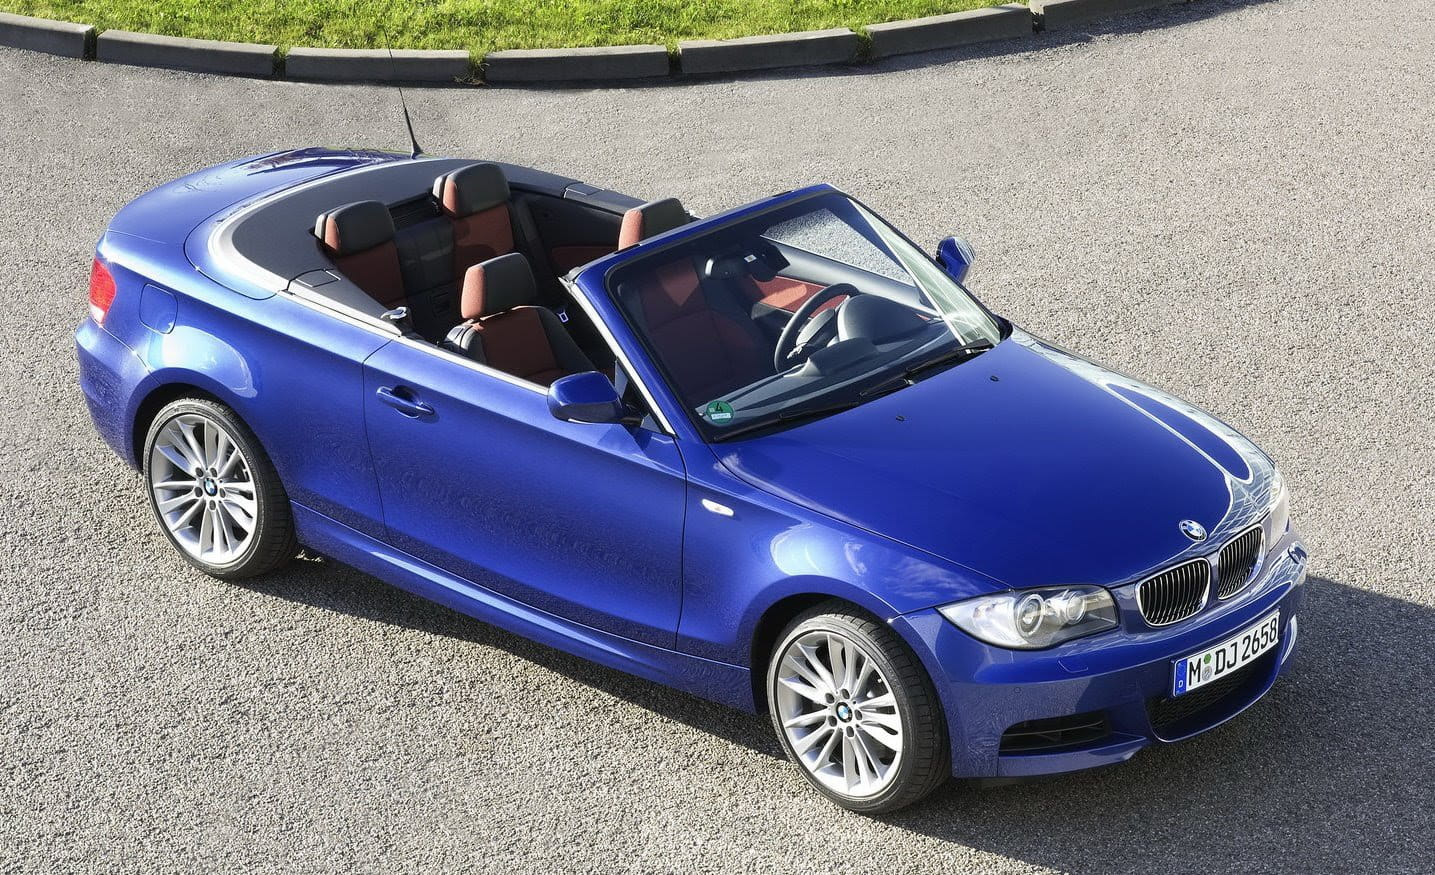 bmw serie 1 135i coup y cabriolet 2011 con nuevo motor 3 0 turbo de seis cilindros diariomotor. Black Bedroom Furniture Sets. Home Design Ideas